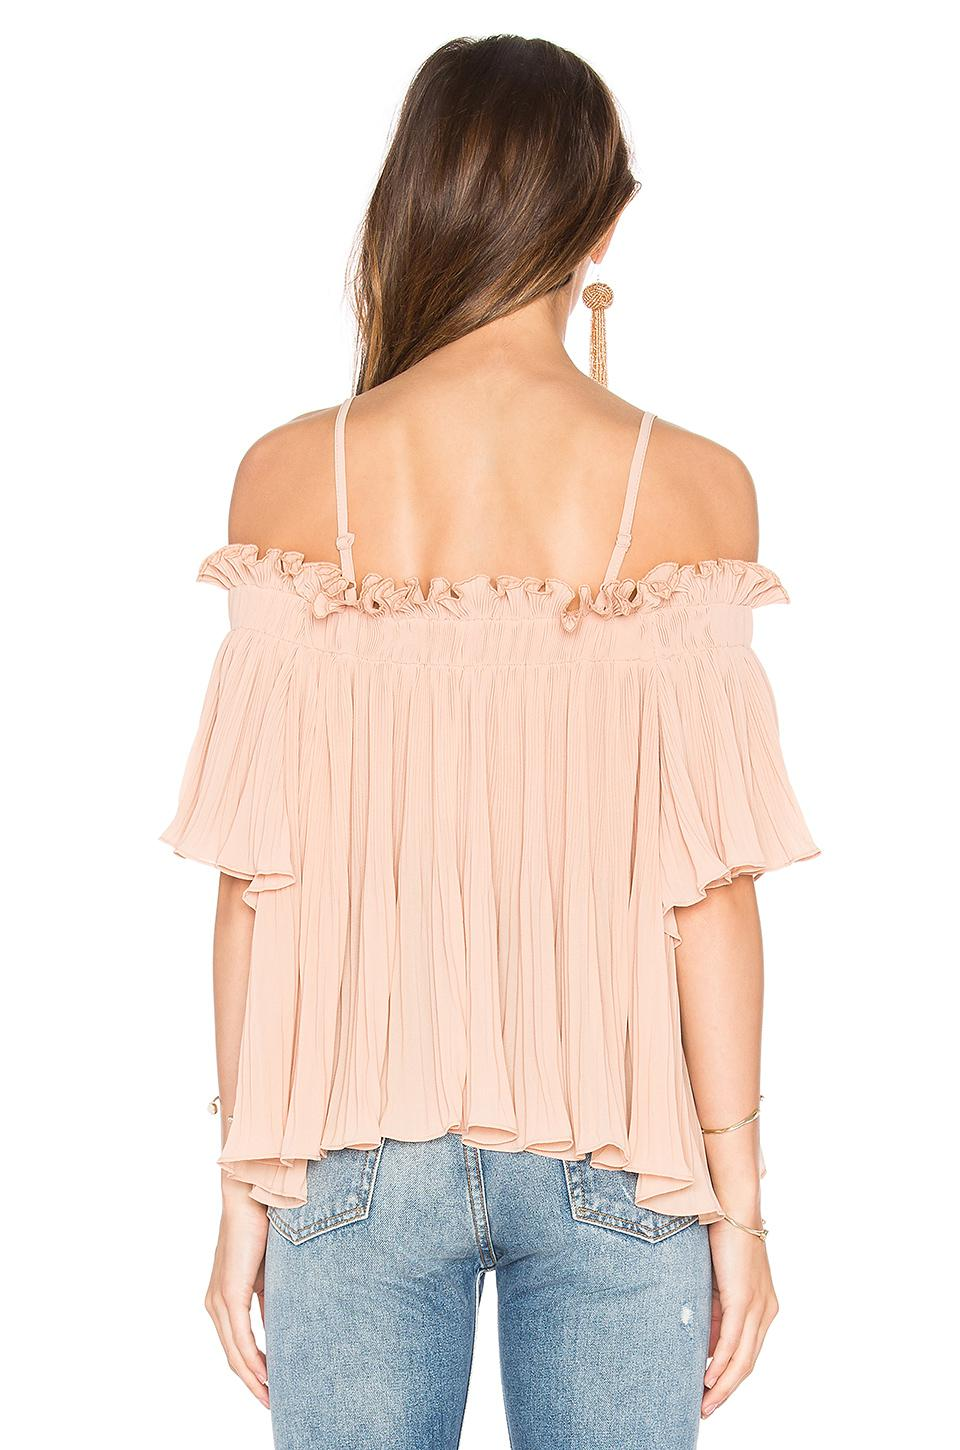 73836ace37c Endless Rose Off The Shoulder Top in Pink - Lyst